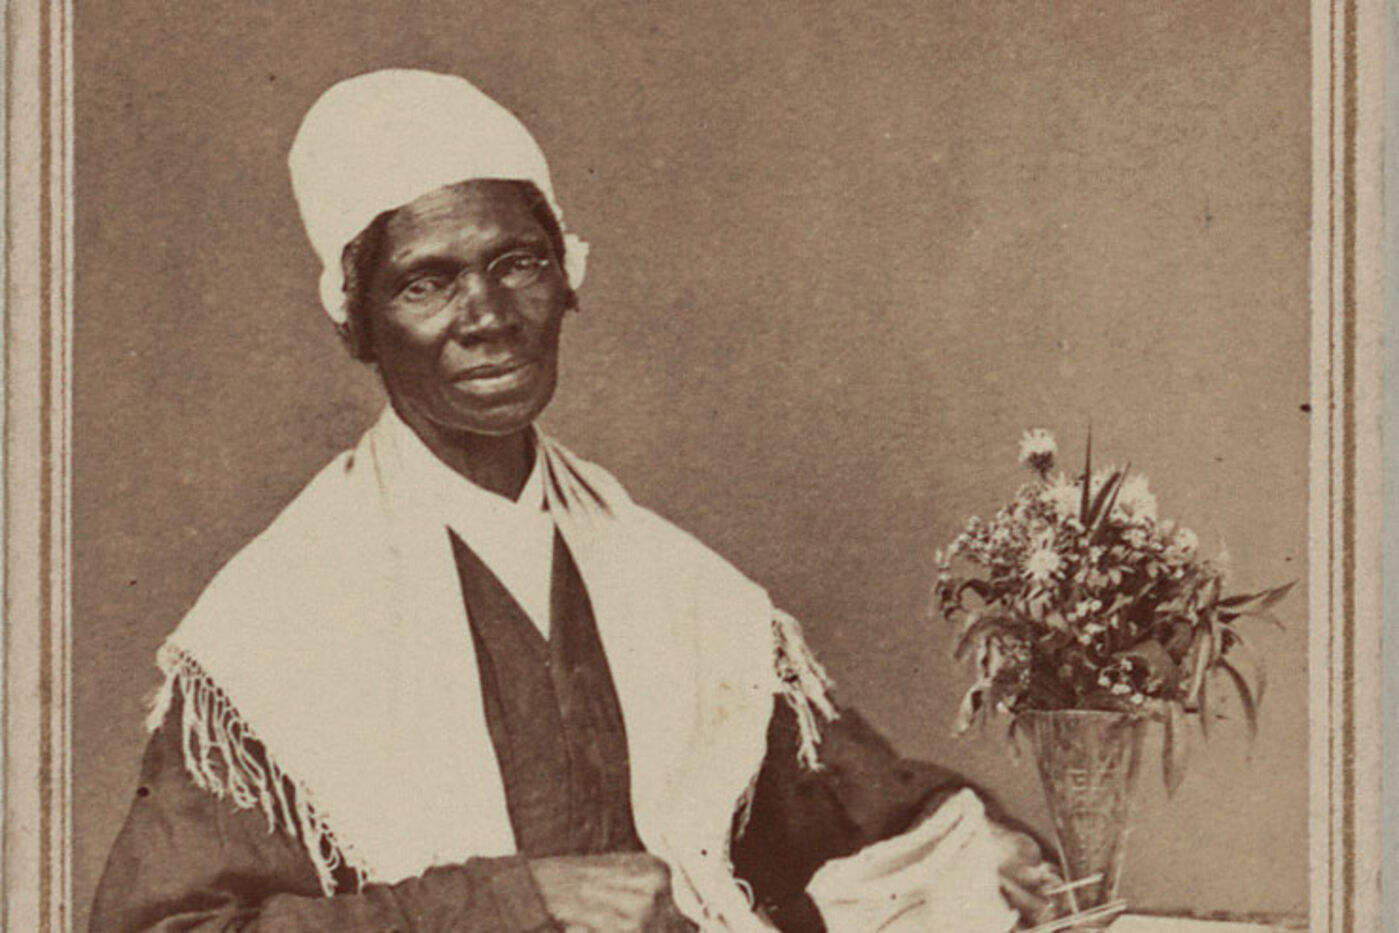 Portrait of Sojourner Truth, seated next to a vase of flowers.